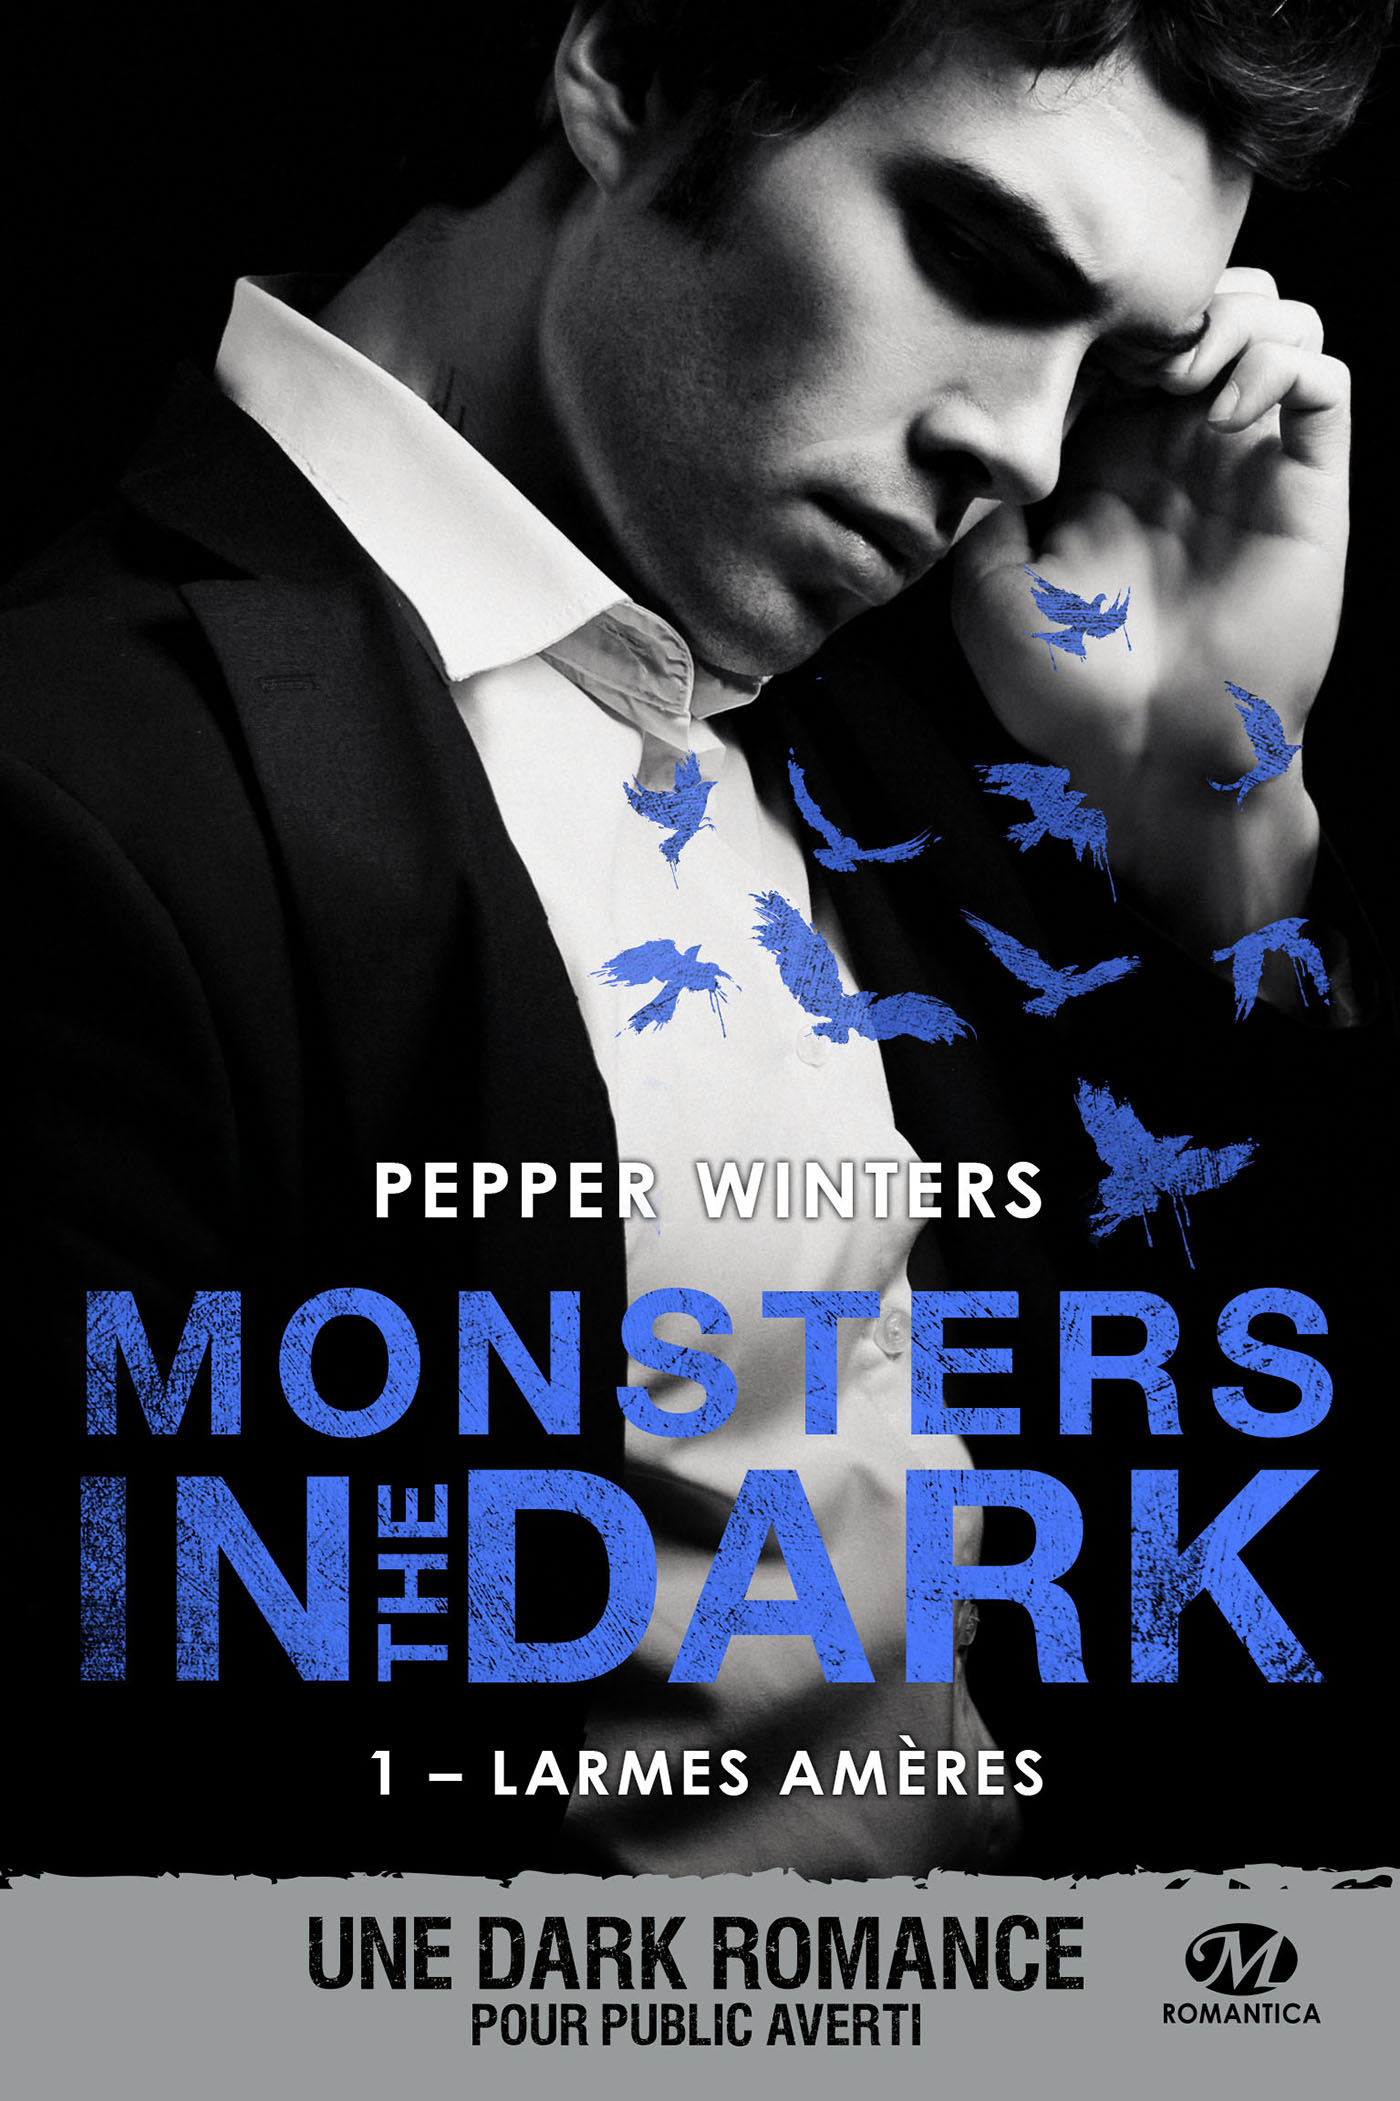 Ebooks - Pepper Winters (public averti) (màj 07/01)